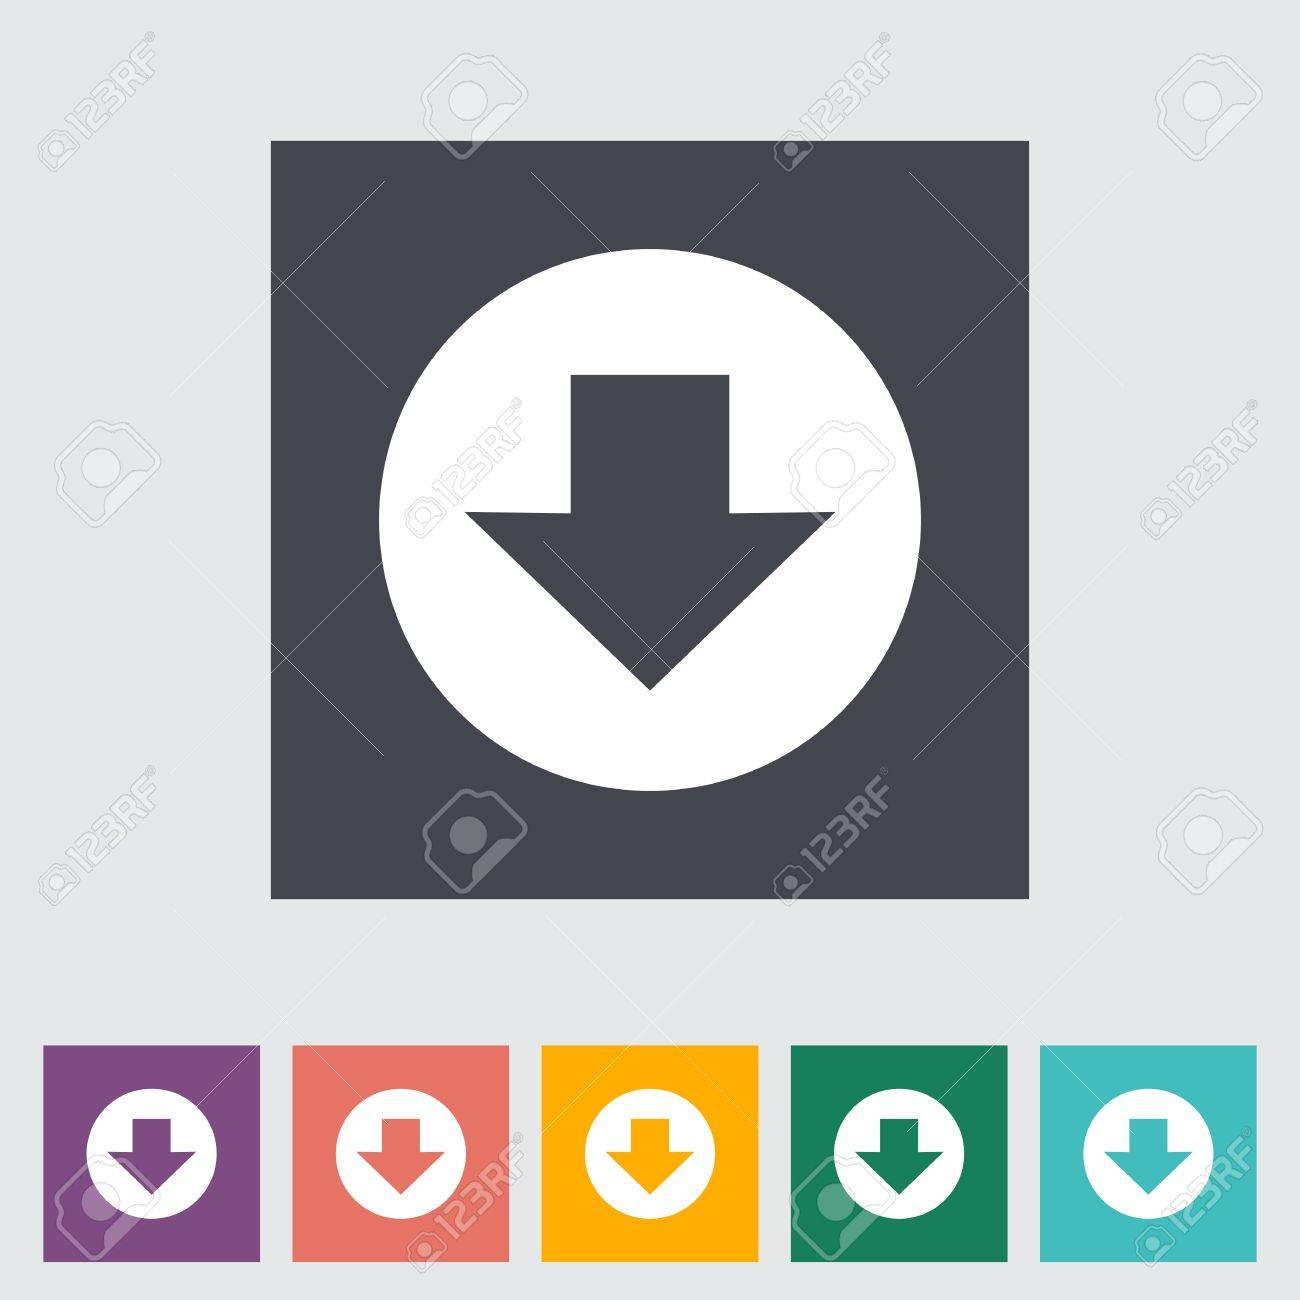 Download. Single flat icon. Vector illustration. Stock Vector - 21025925